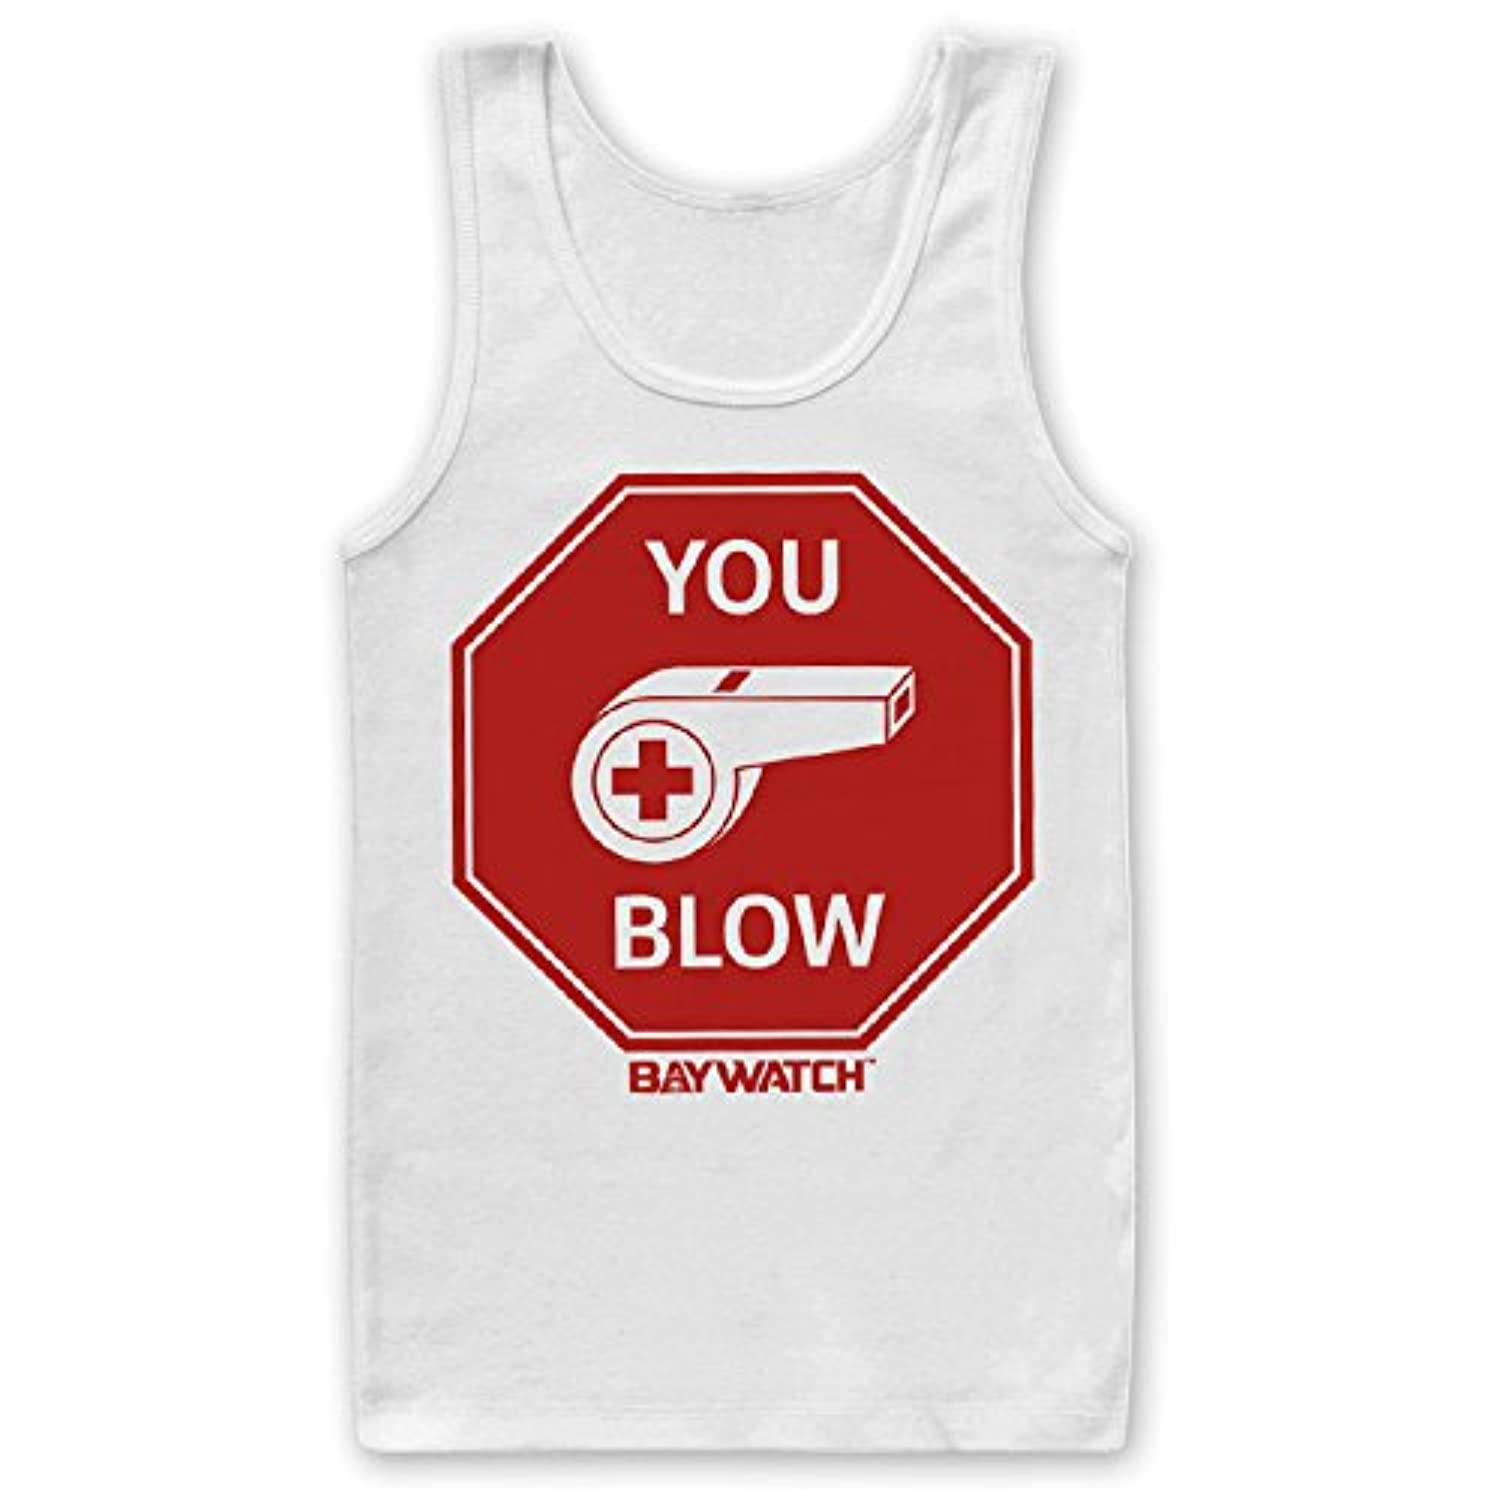 Officially Licensed Baywatch - You Blow Mens Tank Top Vest